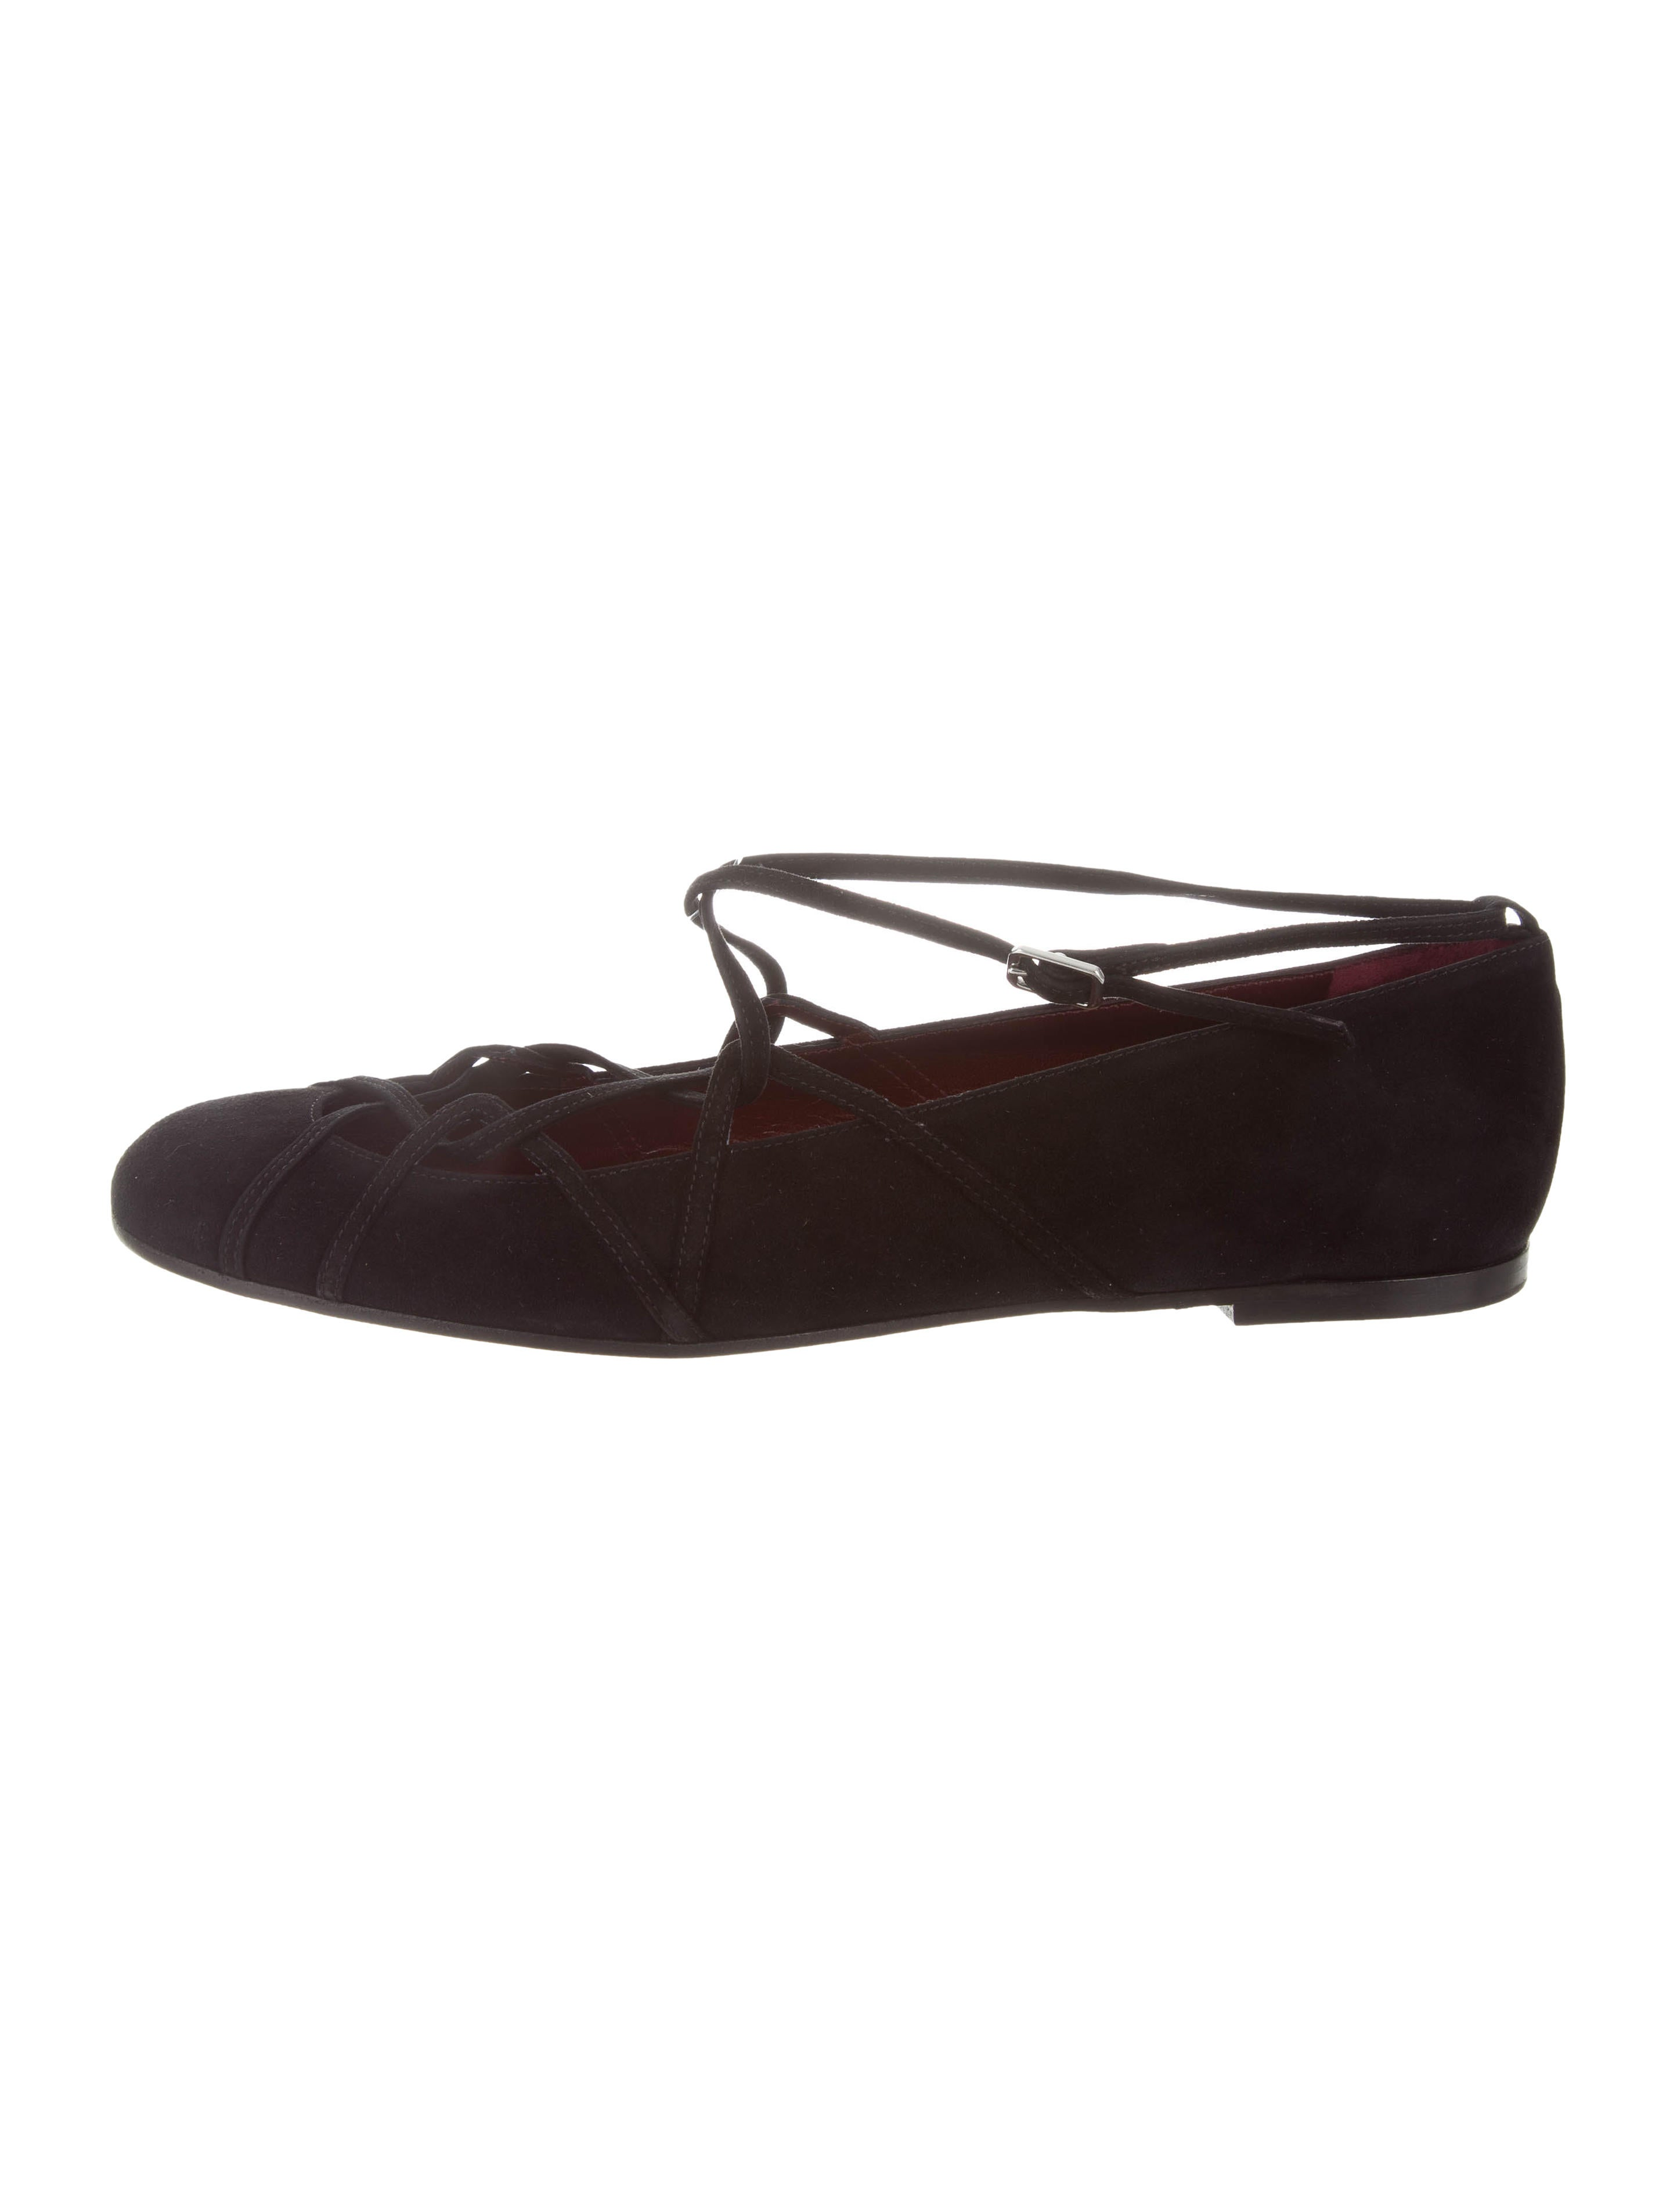 Marc by Marc Jacobs Suede Round-Toe Flats best seller cheap price sale from china OC6O9Nn